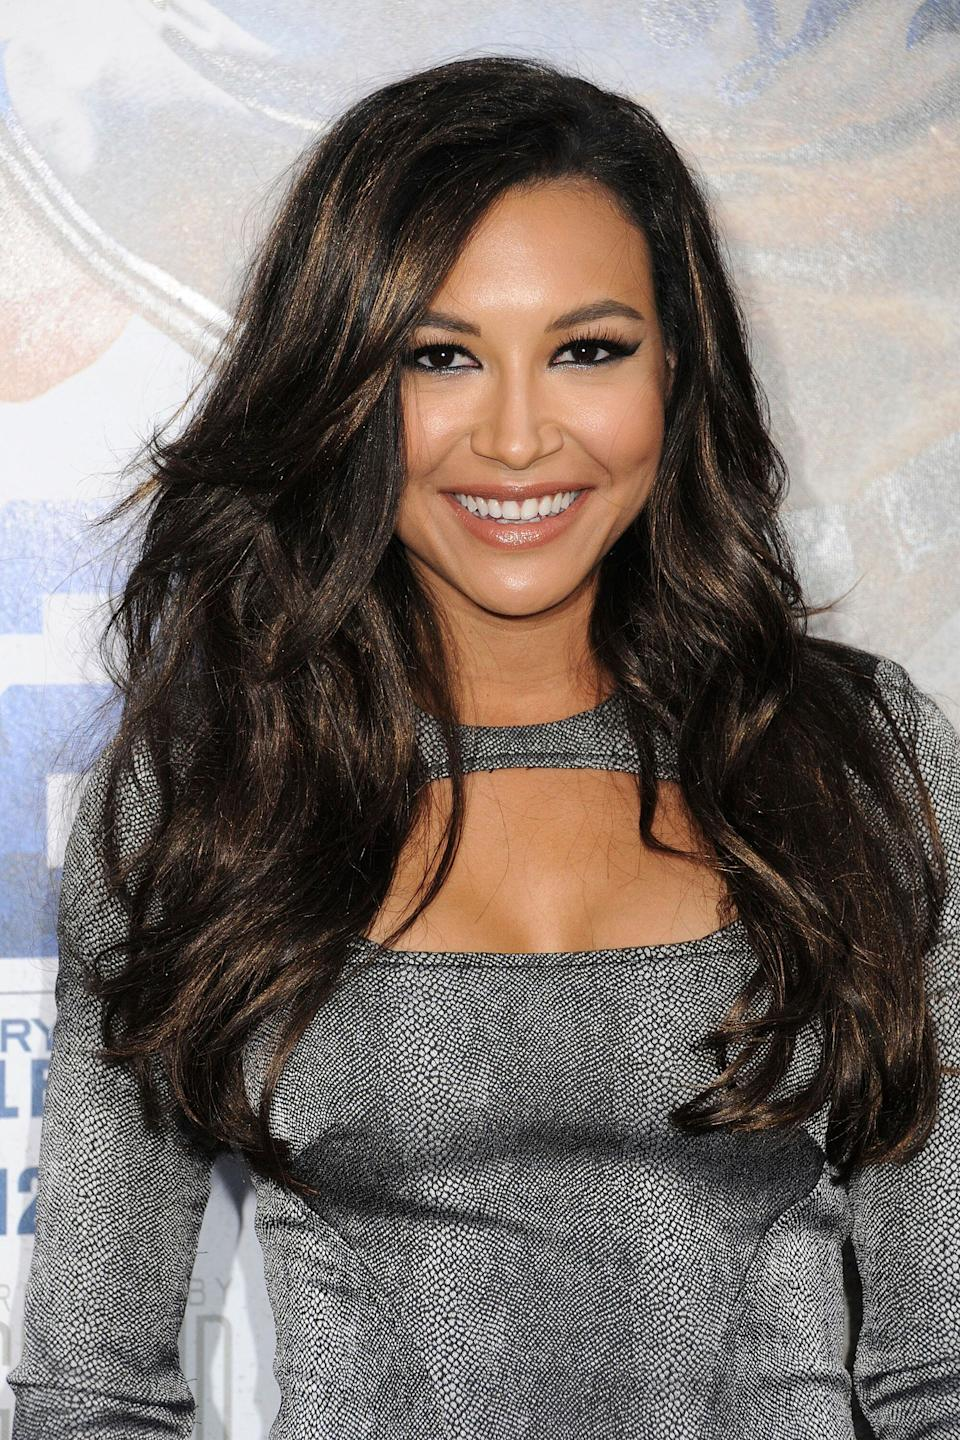 <strong>Naya Rivera (1987 – 2020)<br /><br /></strong>Naya was best known for her portrayal of Santana Lopez in the hit musical comedy Glee. Naya's body was found five days after she went missing at a lake in California.